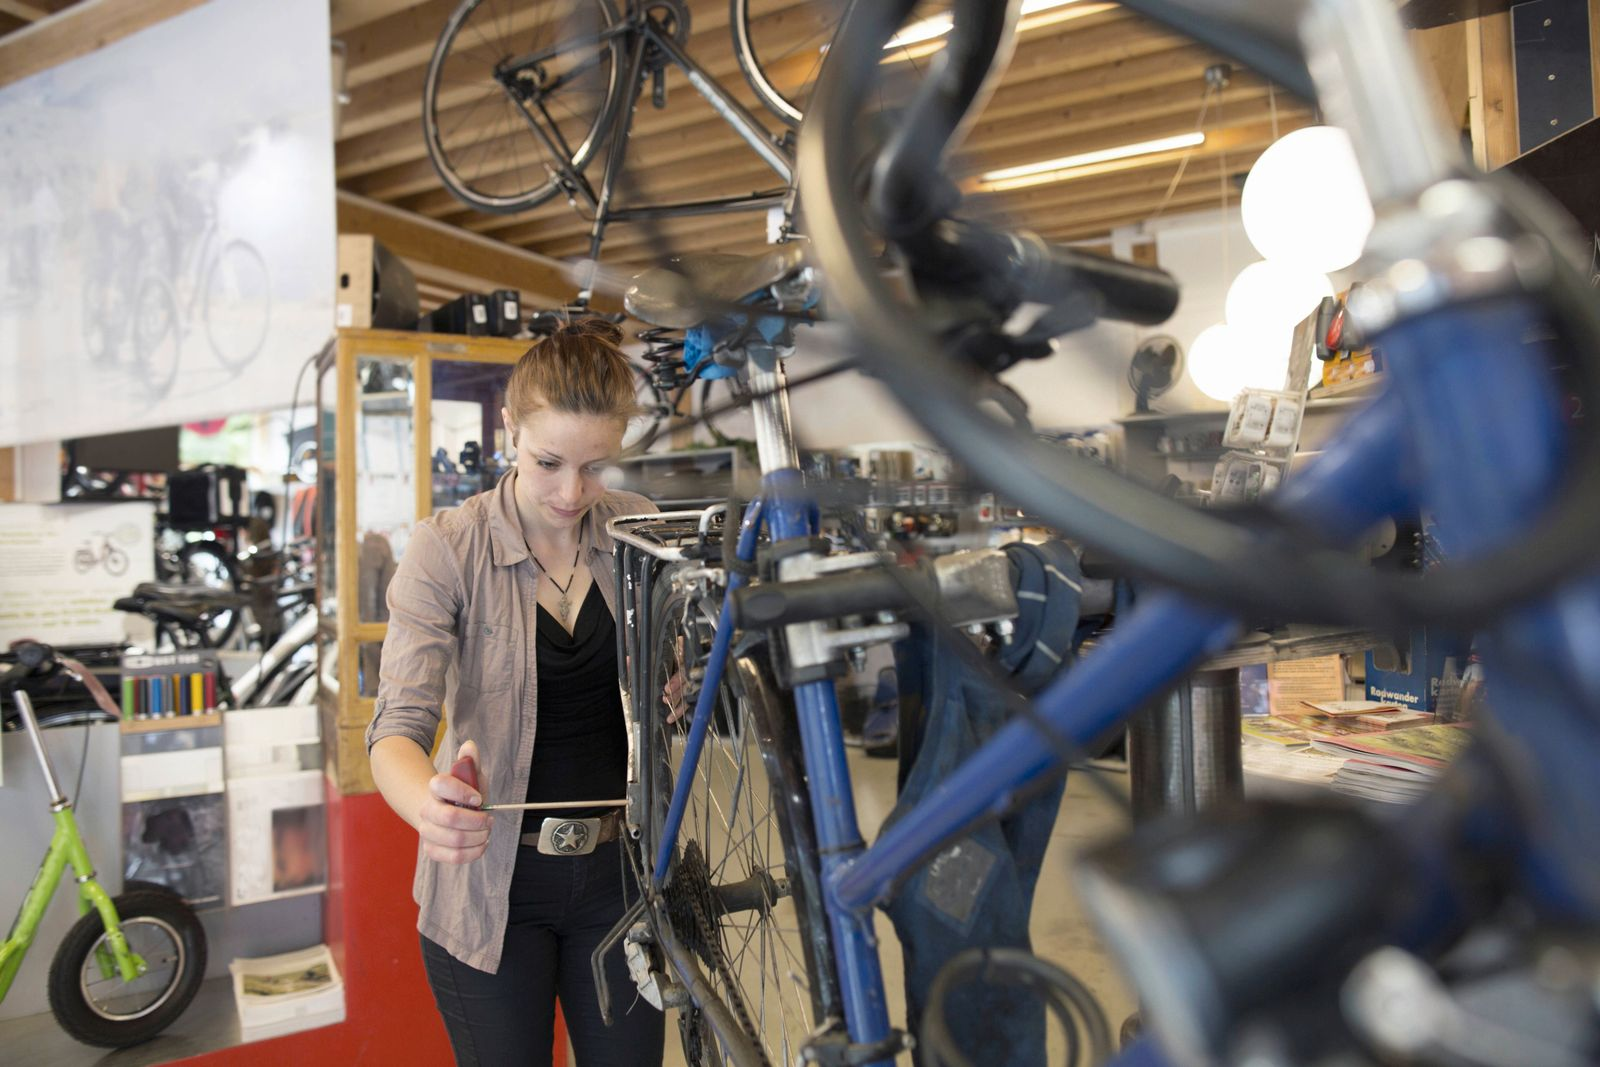 Young woman working in a bicycle repair shop model released Symbolfoto property released PUBLICATION